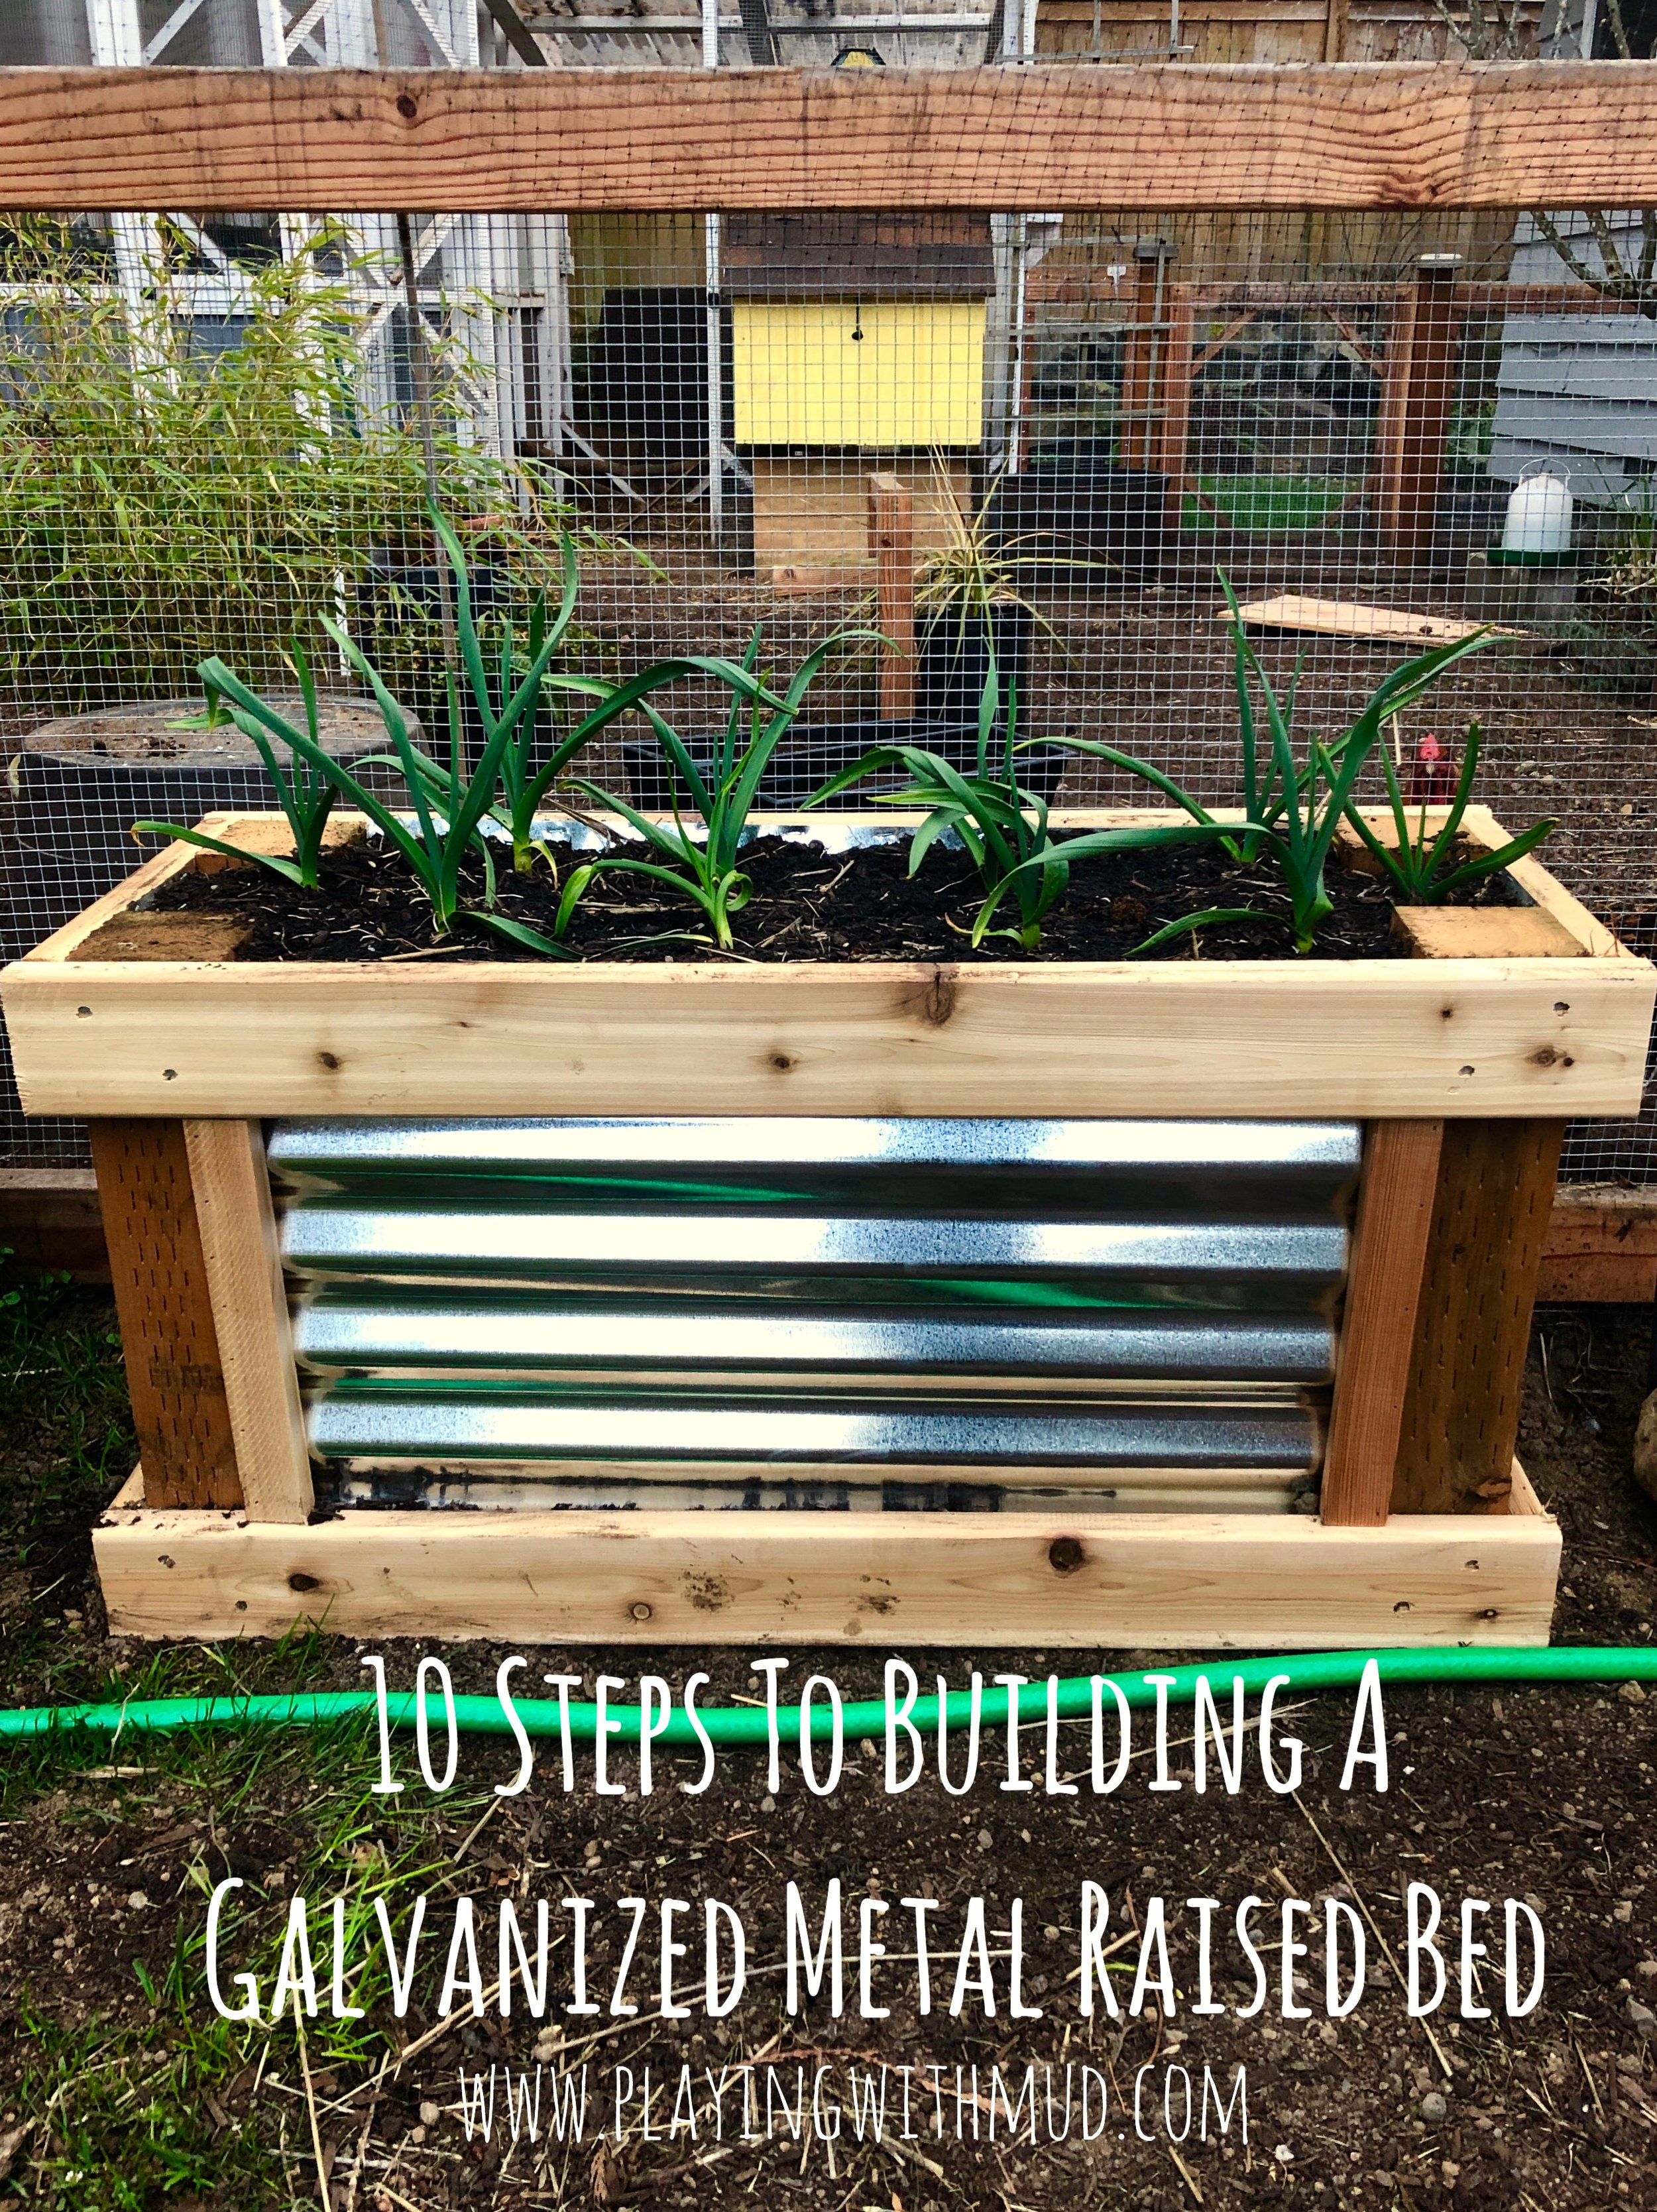 10 Steps To Building A Galvanized Metal Raised Bed Playing With Mud